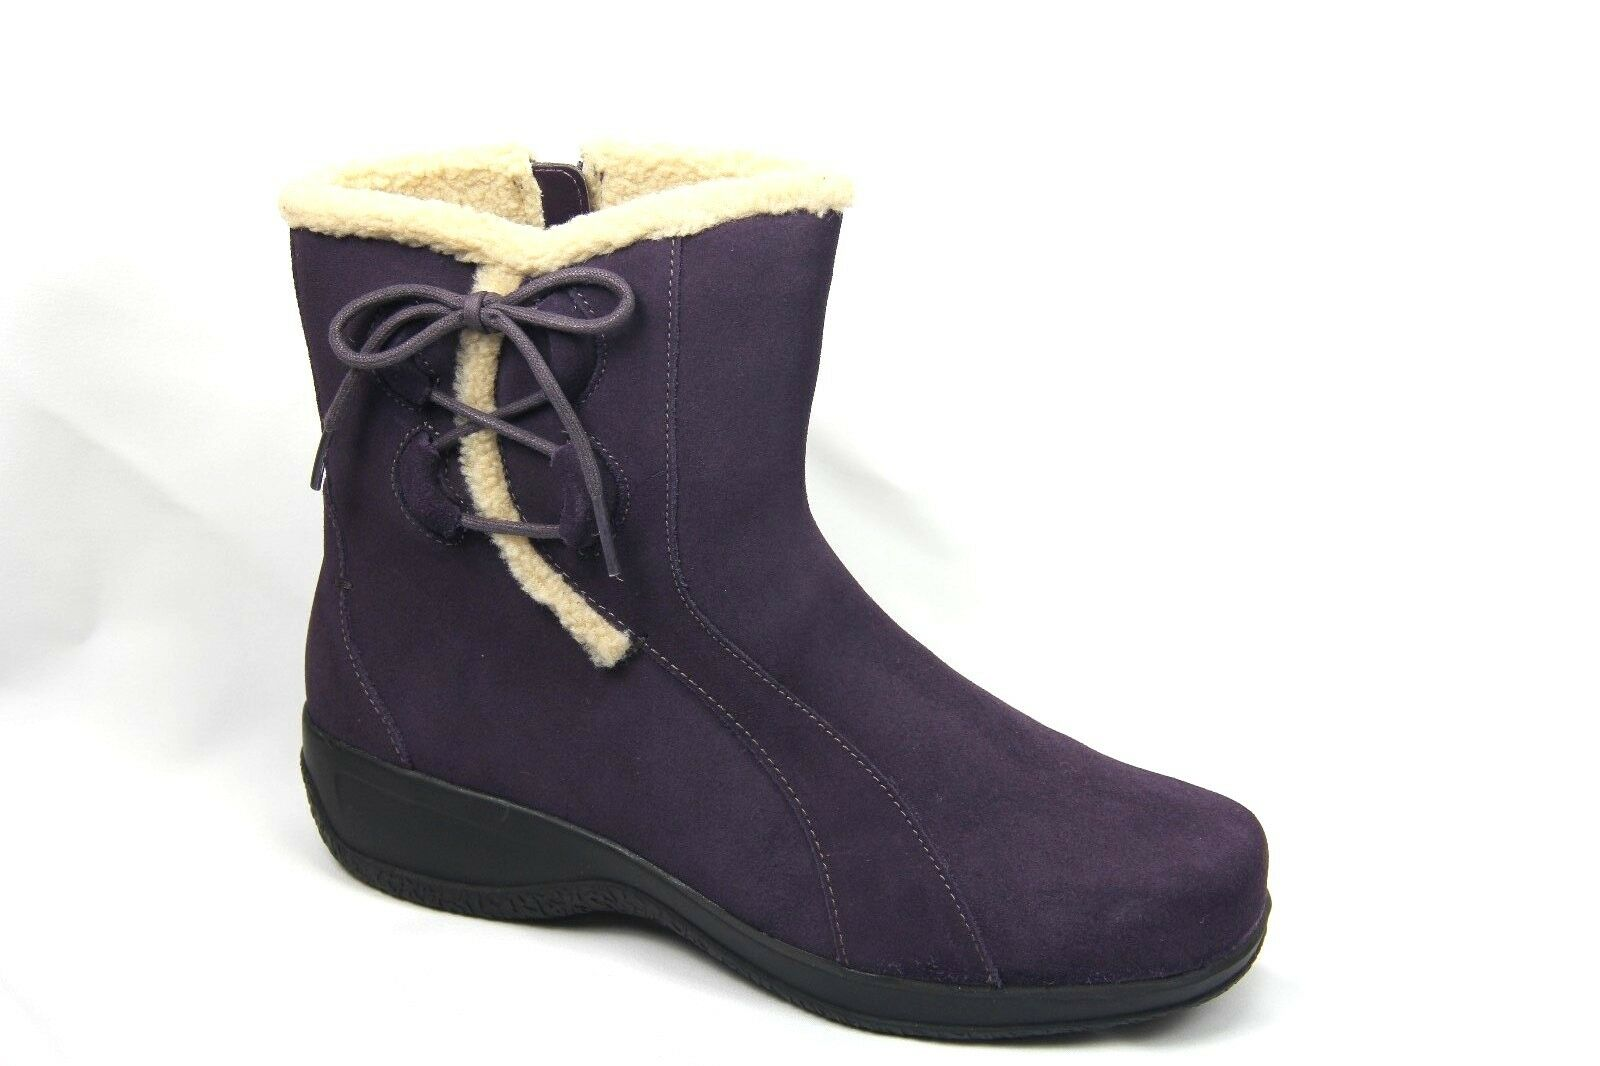 Clarks Angie Madi Women's Bendables Winter Boot Purple Suede Style # 35612